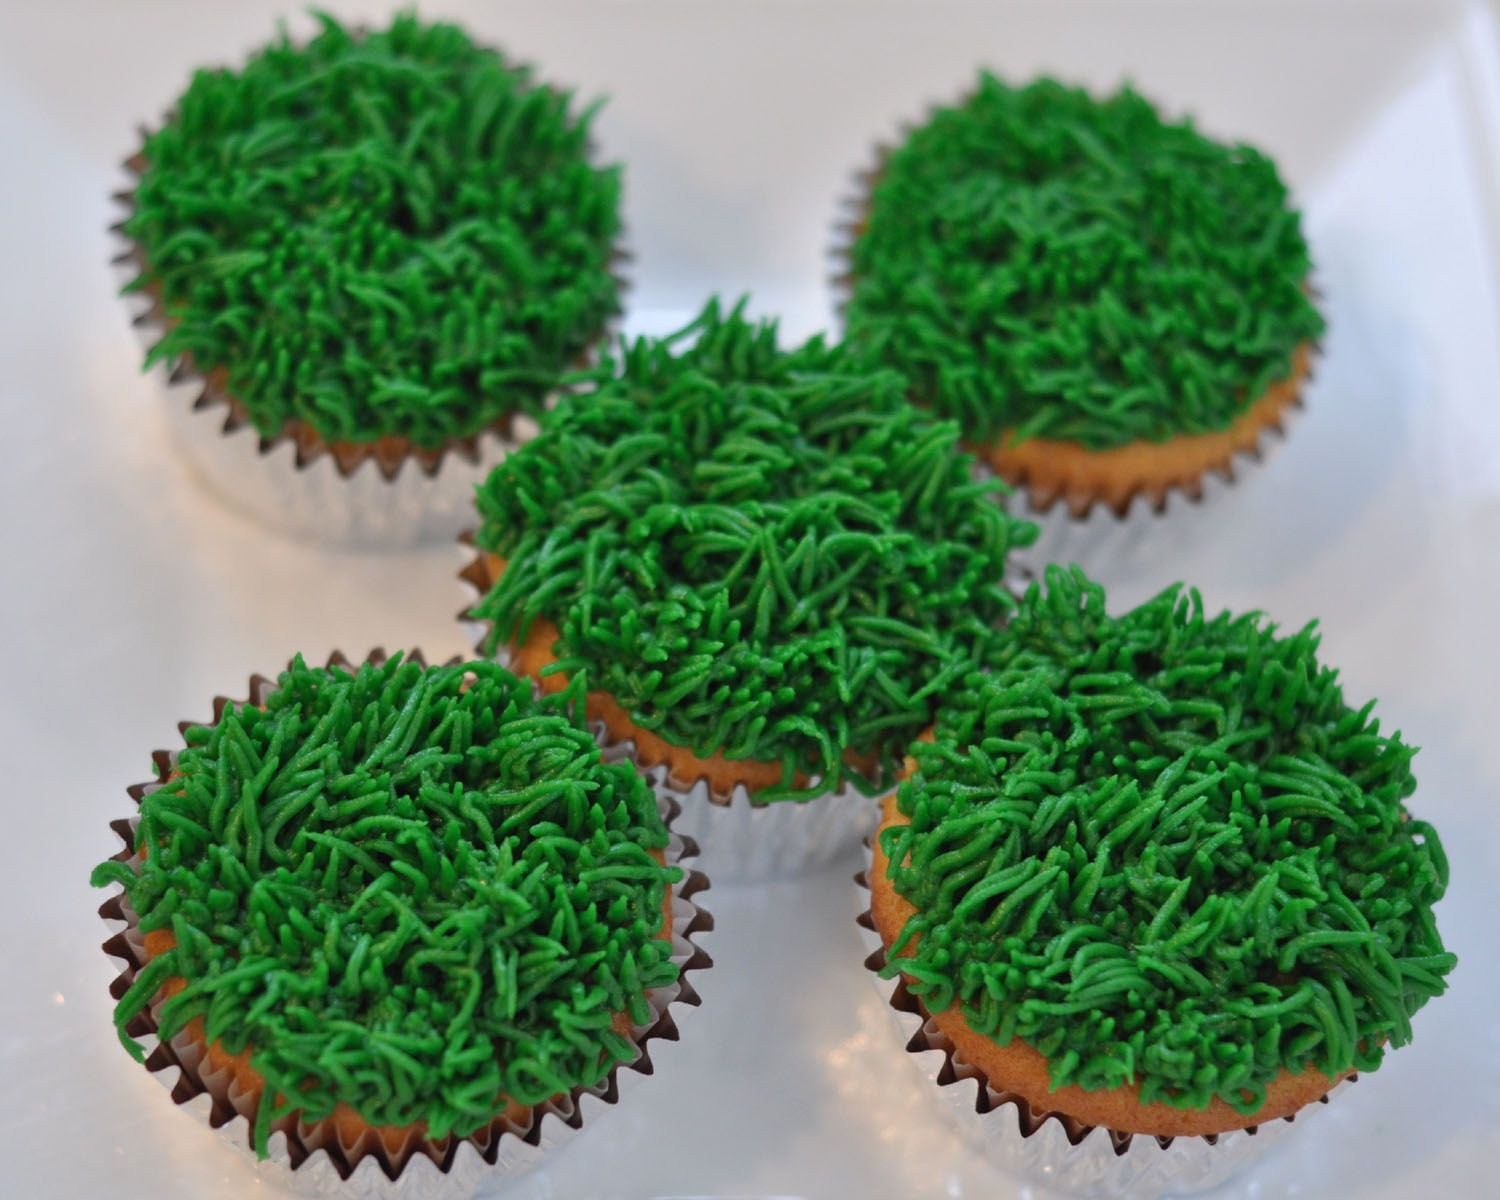 How to make icing grass for cakes